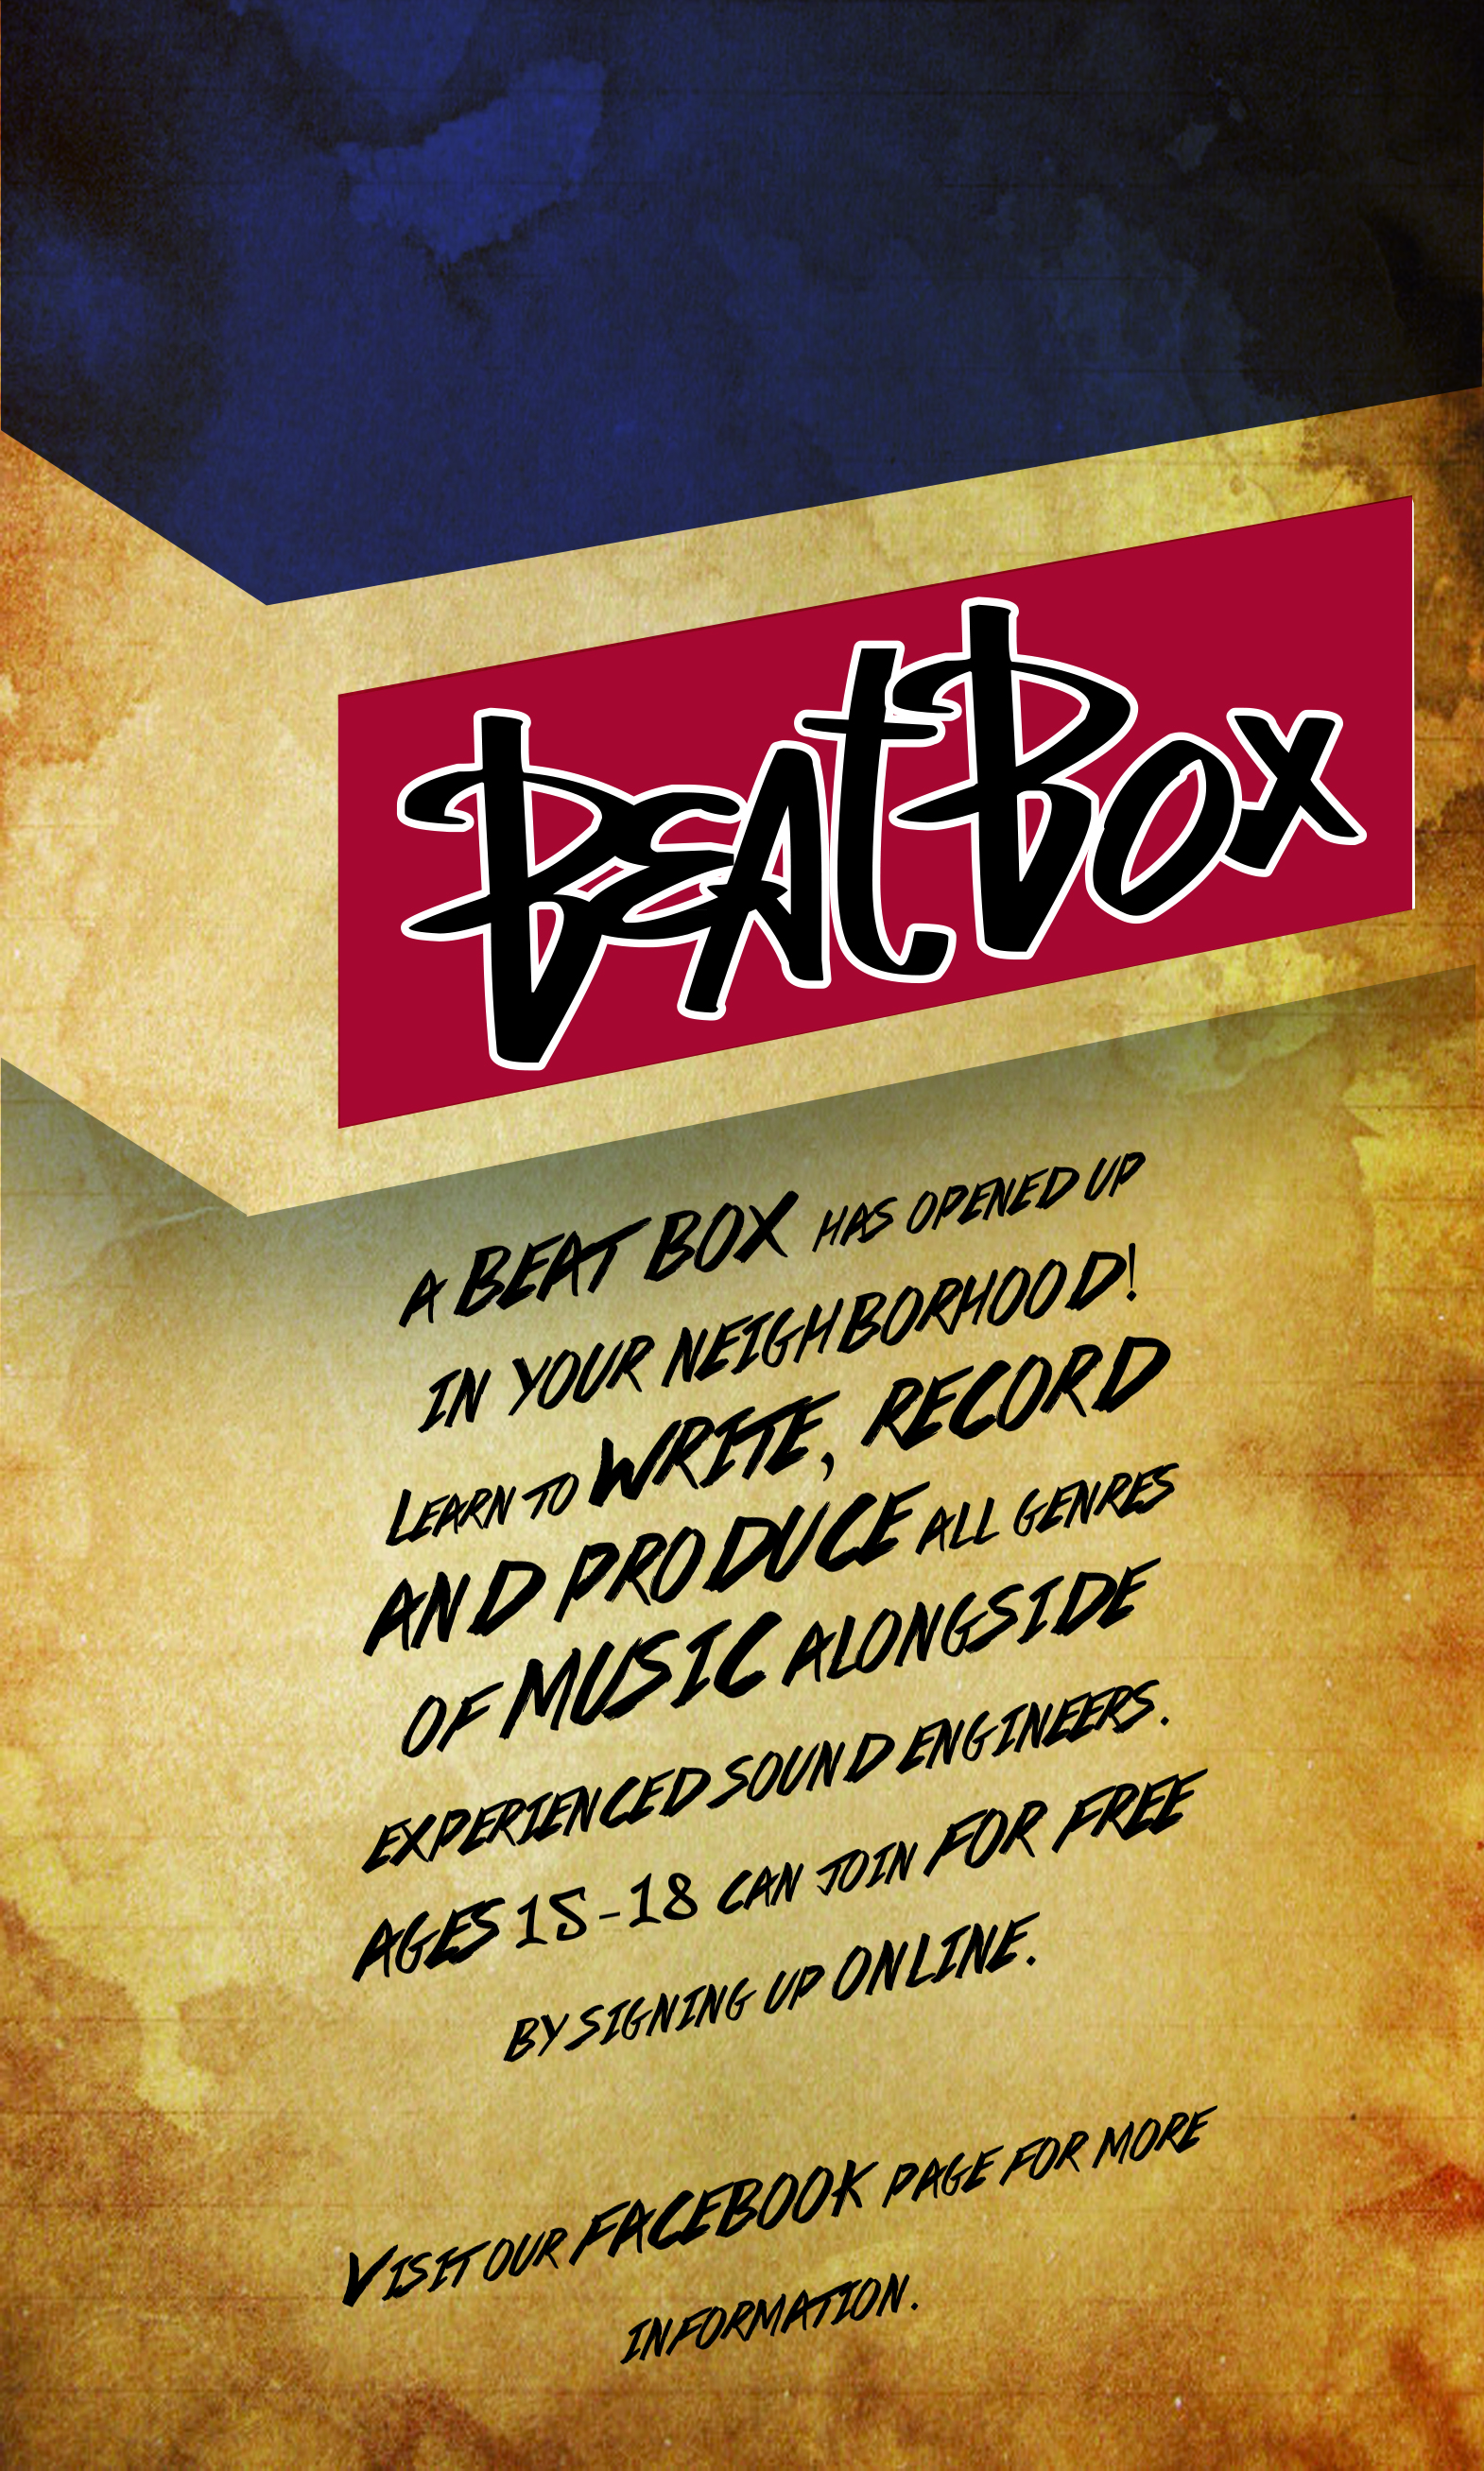 BeatBox Pop-Up Studio Poster